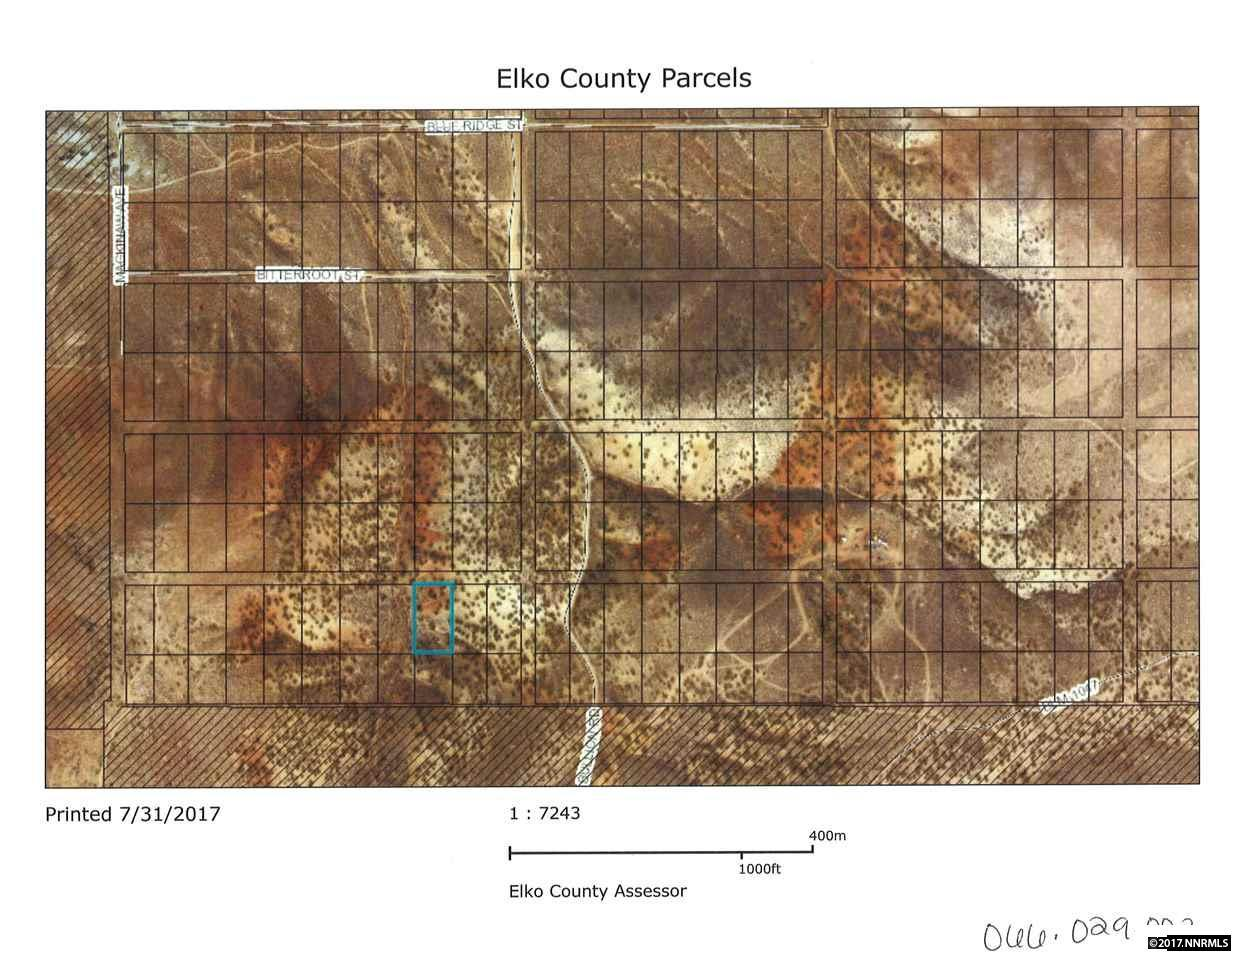 Elko County Natural Resources Map on crawford county missouri plat map, minnesota state bordering states map, nevada road conditions map, city of ely nv map,